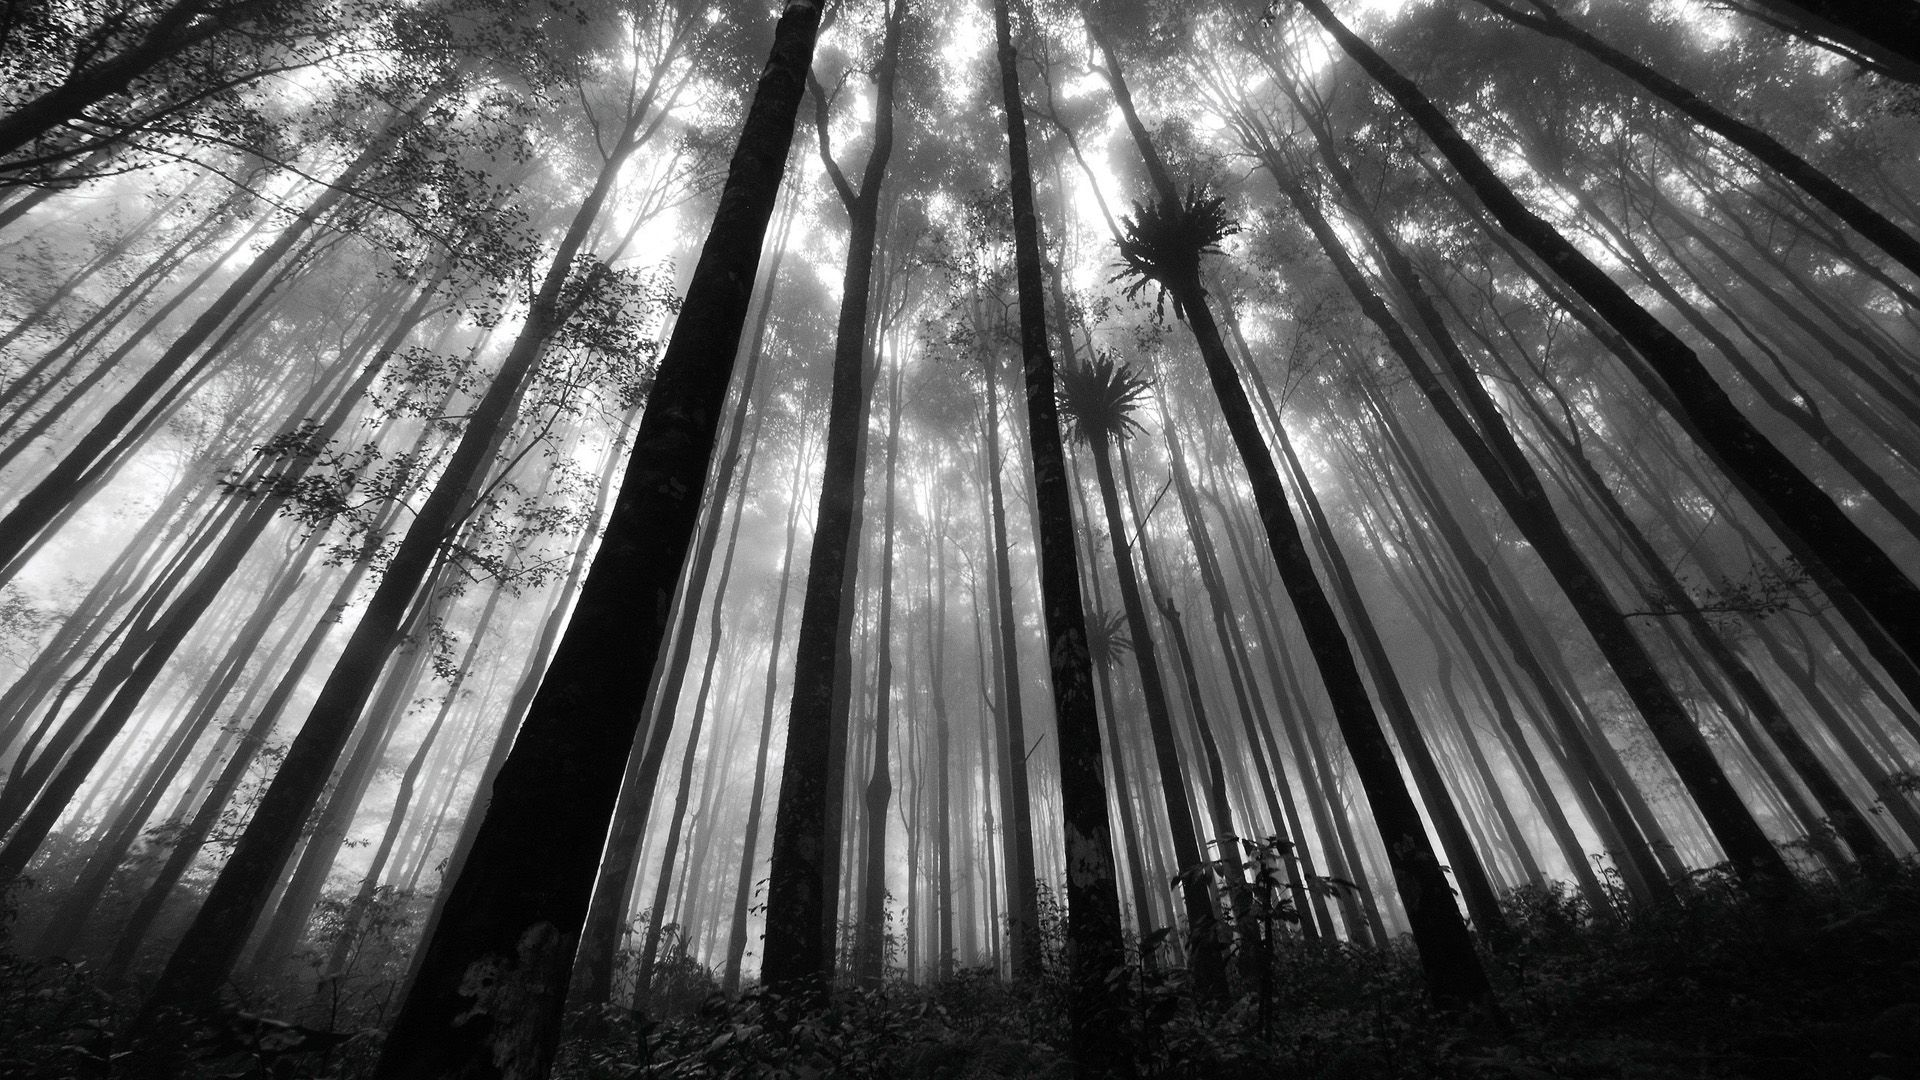 Grey Scale Google Search Forest Wallpaper Black And White Wallpaper White Wallpaper